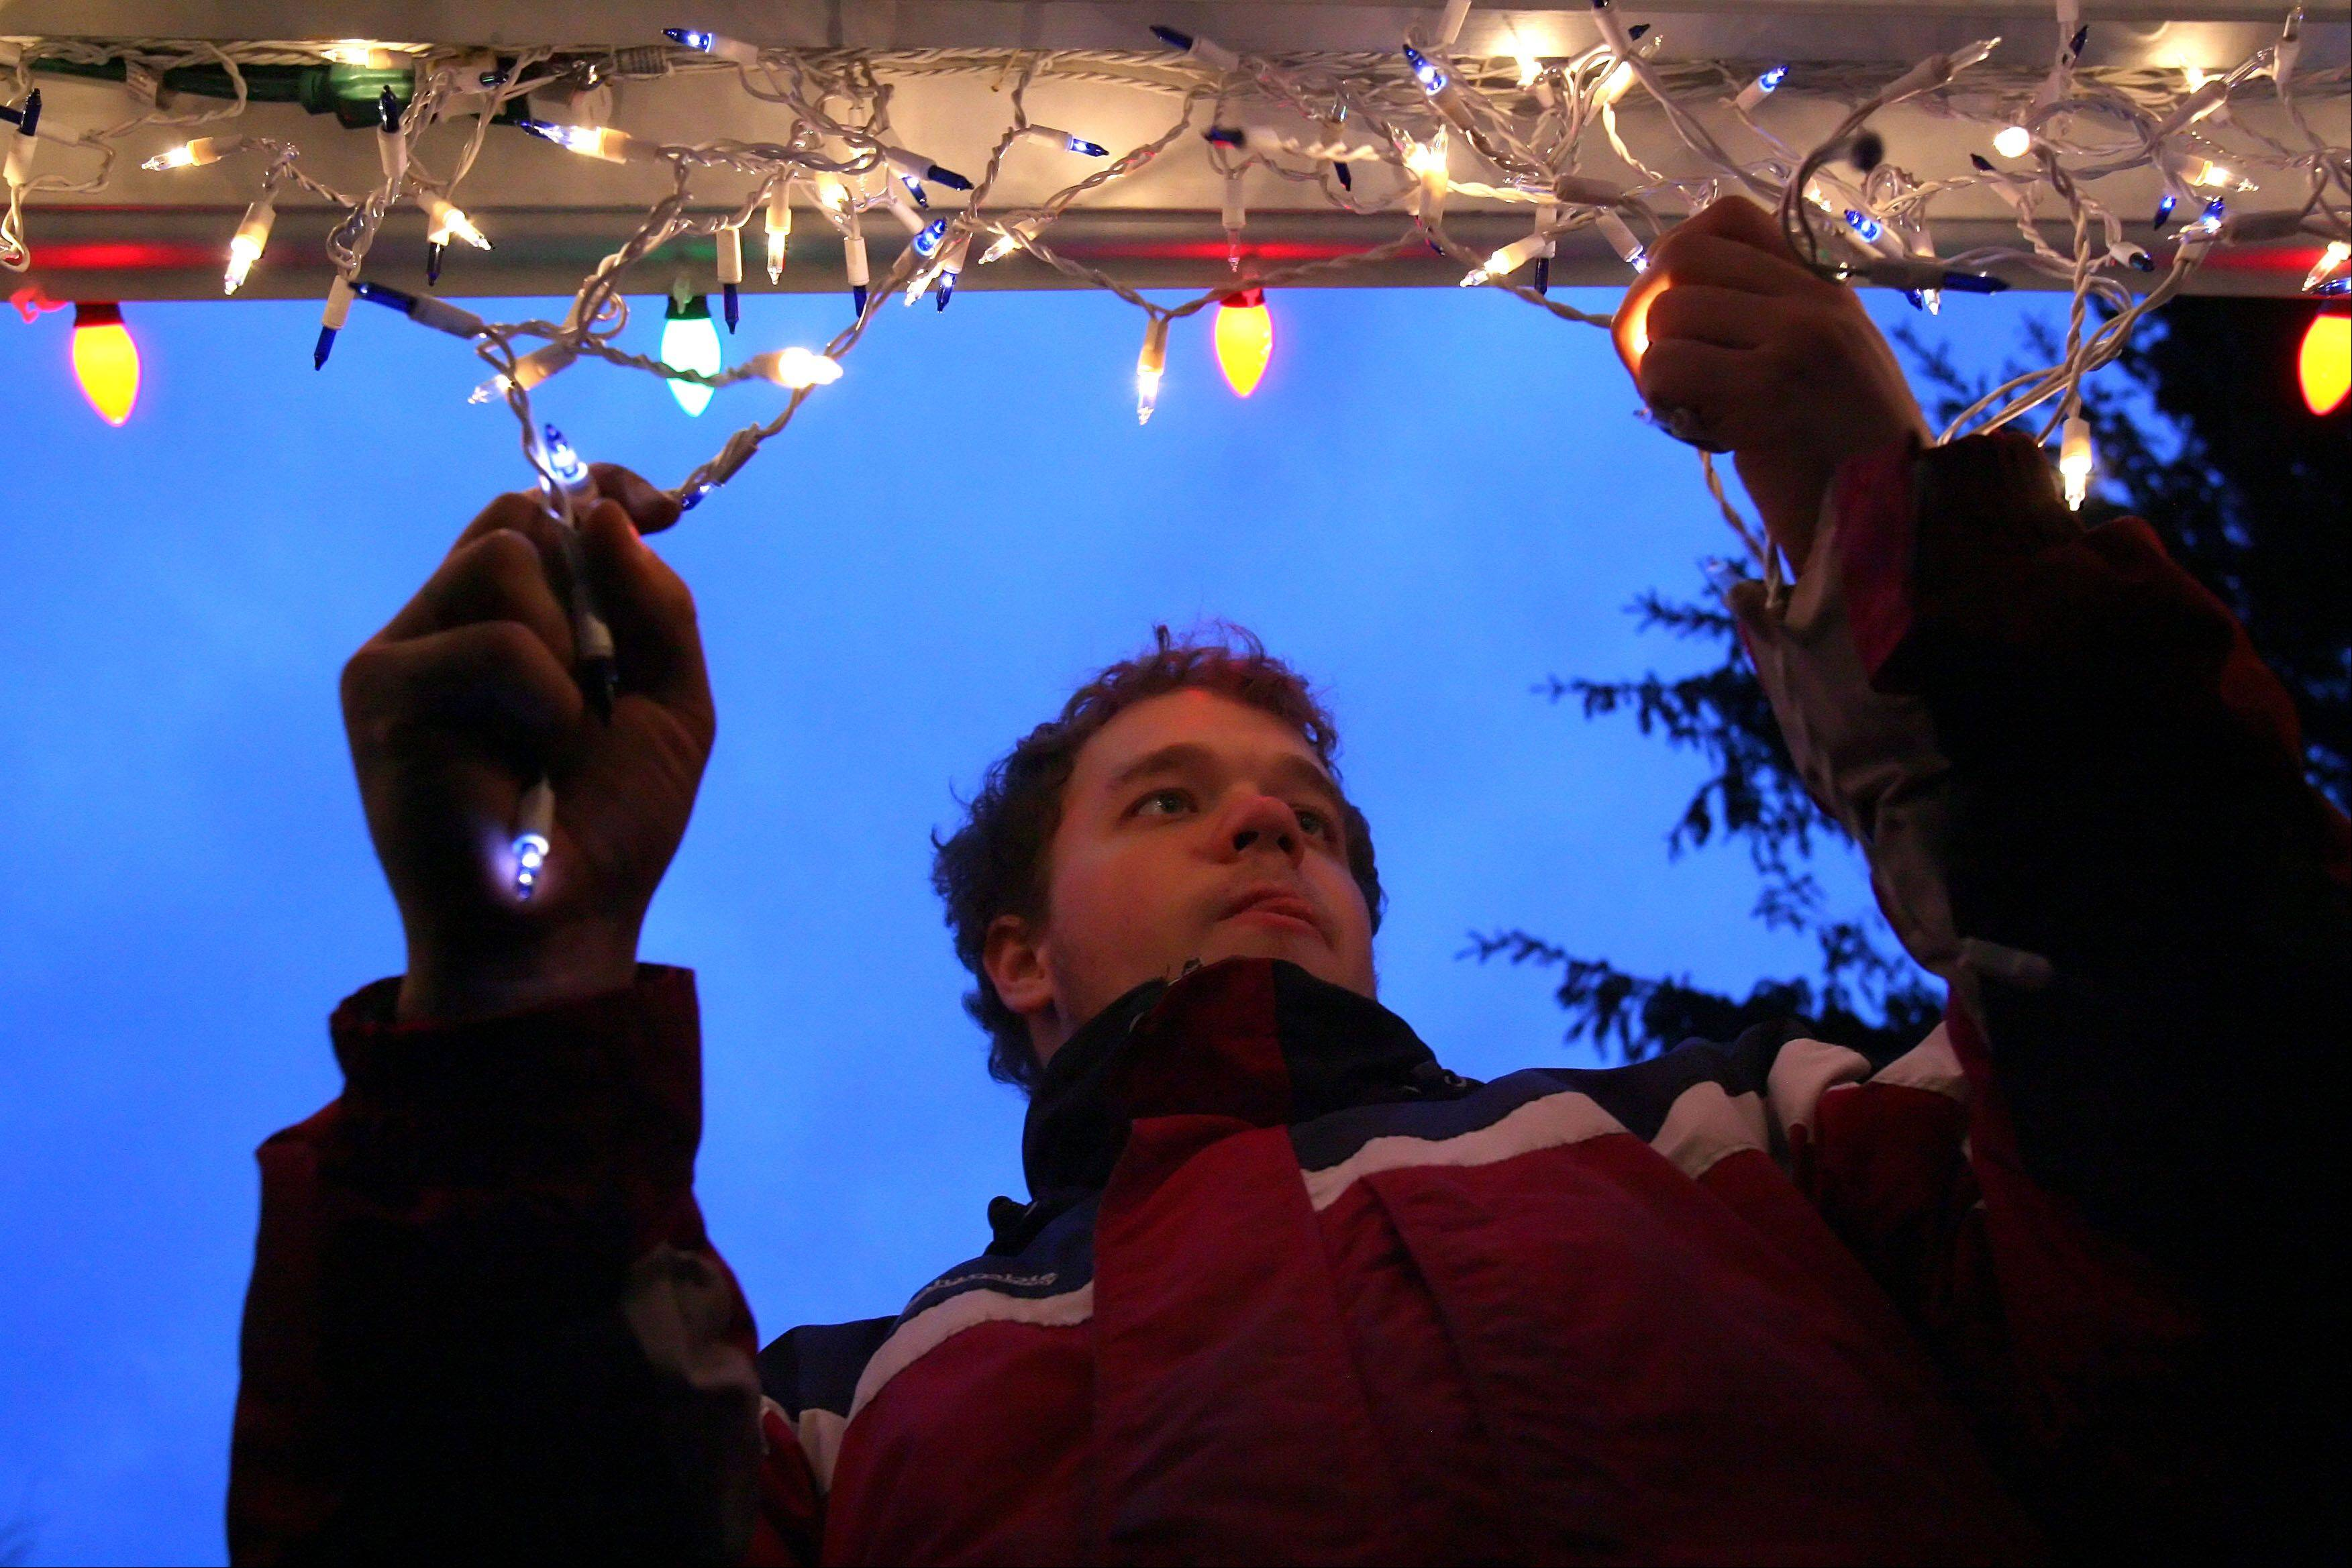 Germann makes adjustments to the Christmas lights on his front porch.